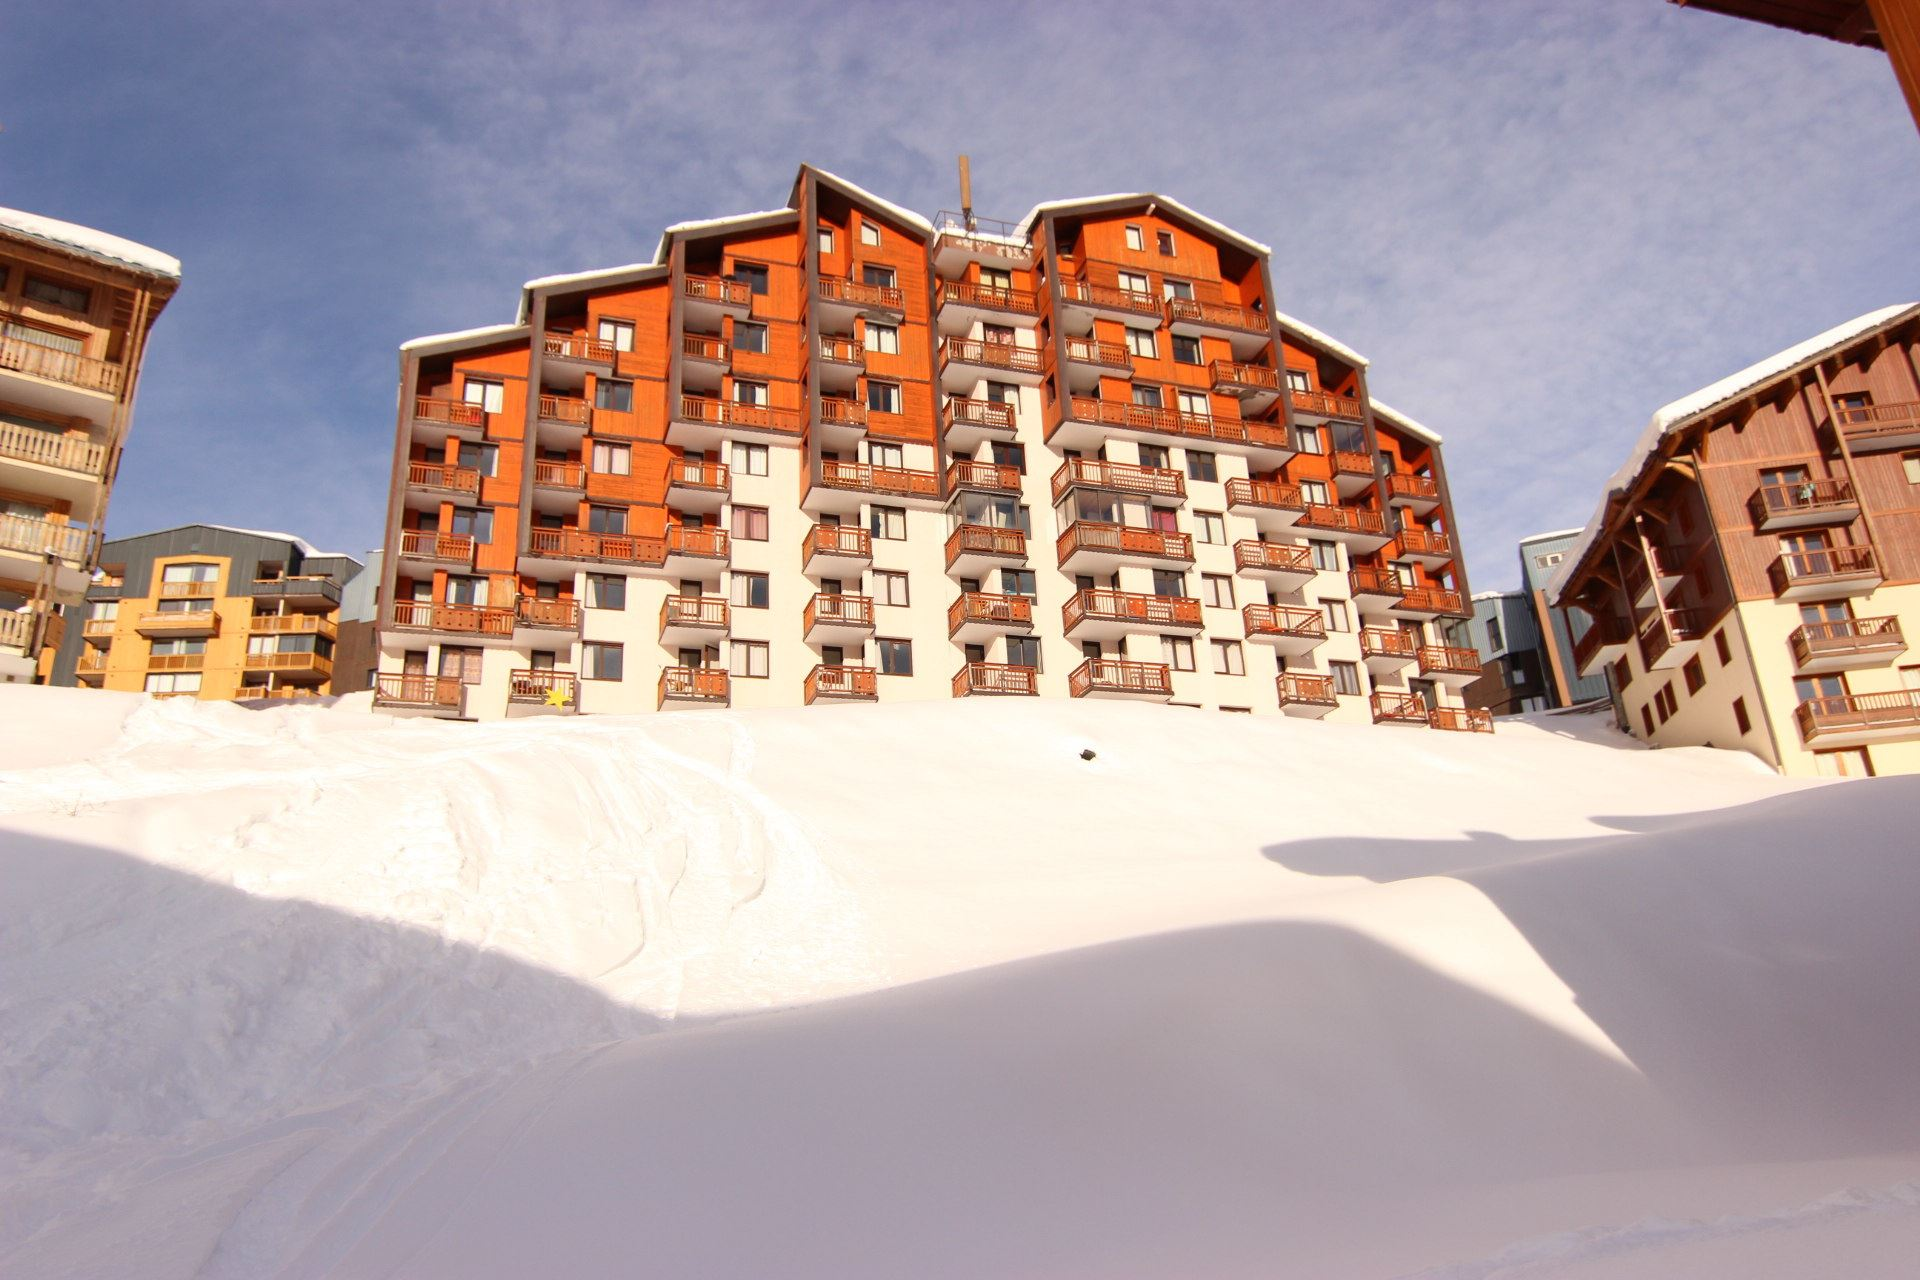 JOKER 13 / 2 ROOMS 4 PERSONS - 1 SILVER SNOWFLAKES - VTI